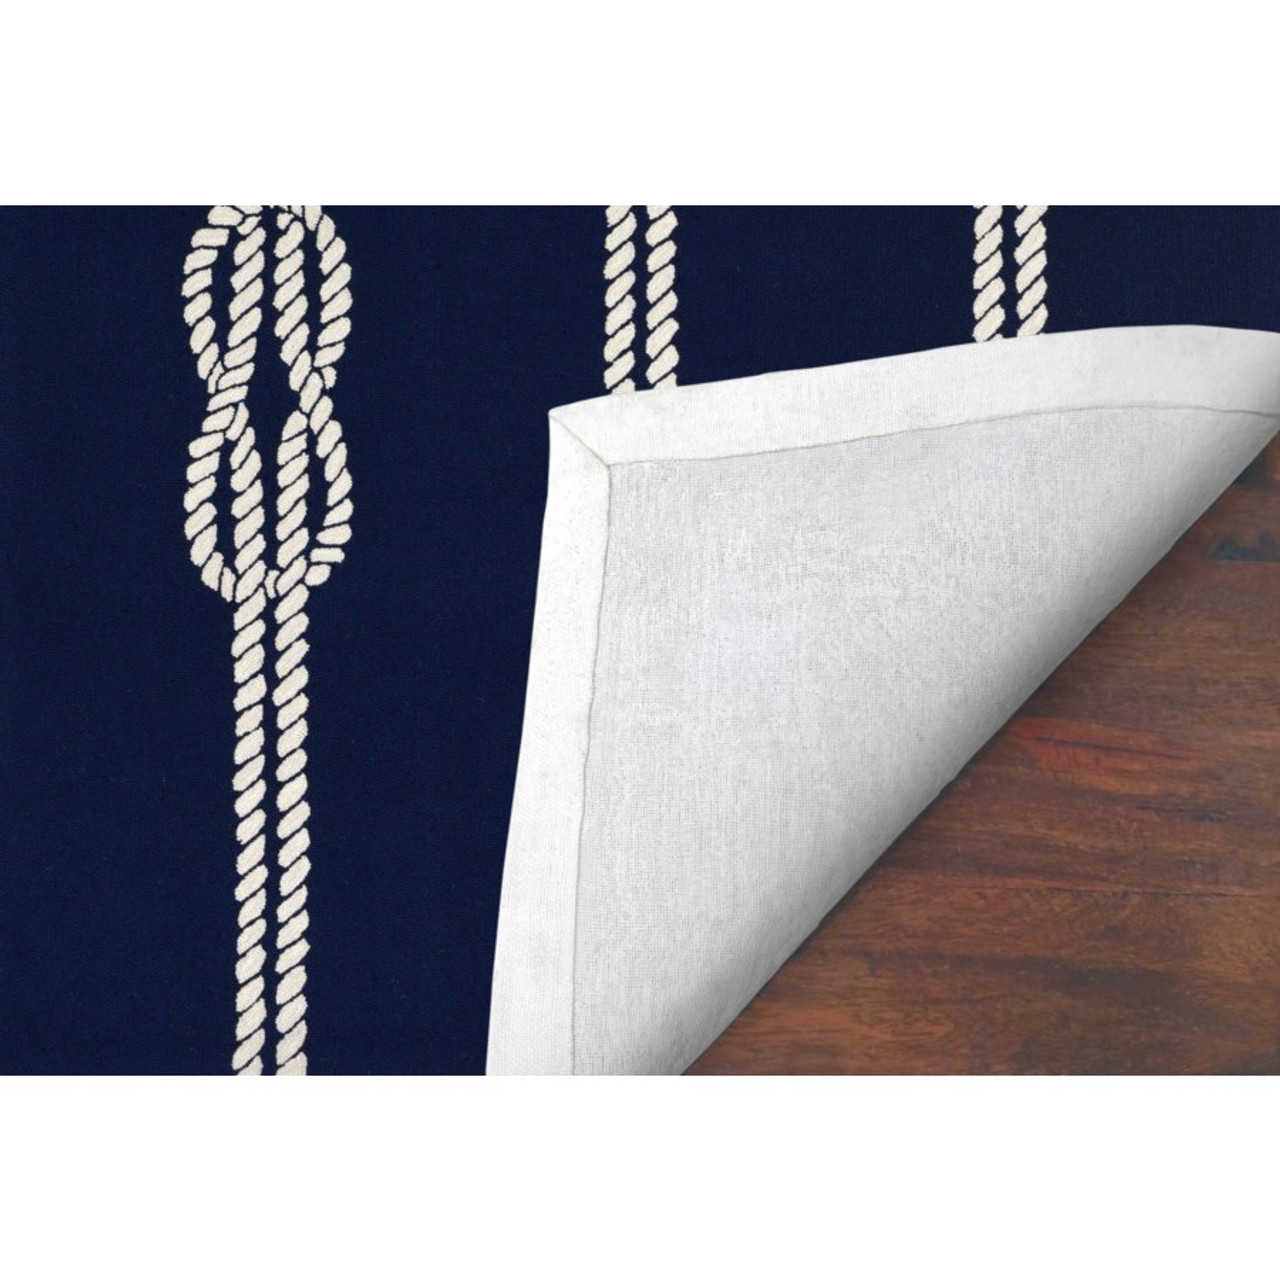 Navy Capri Nautical Ropes Indoor/Outdoor Rug - Backing